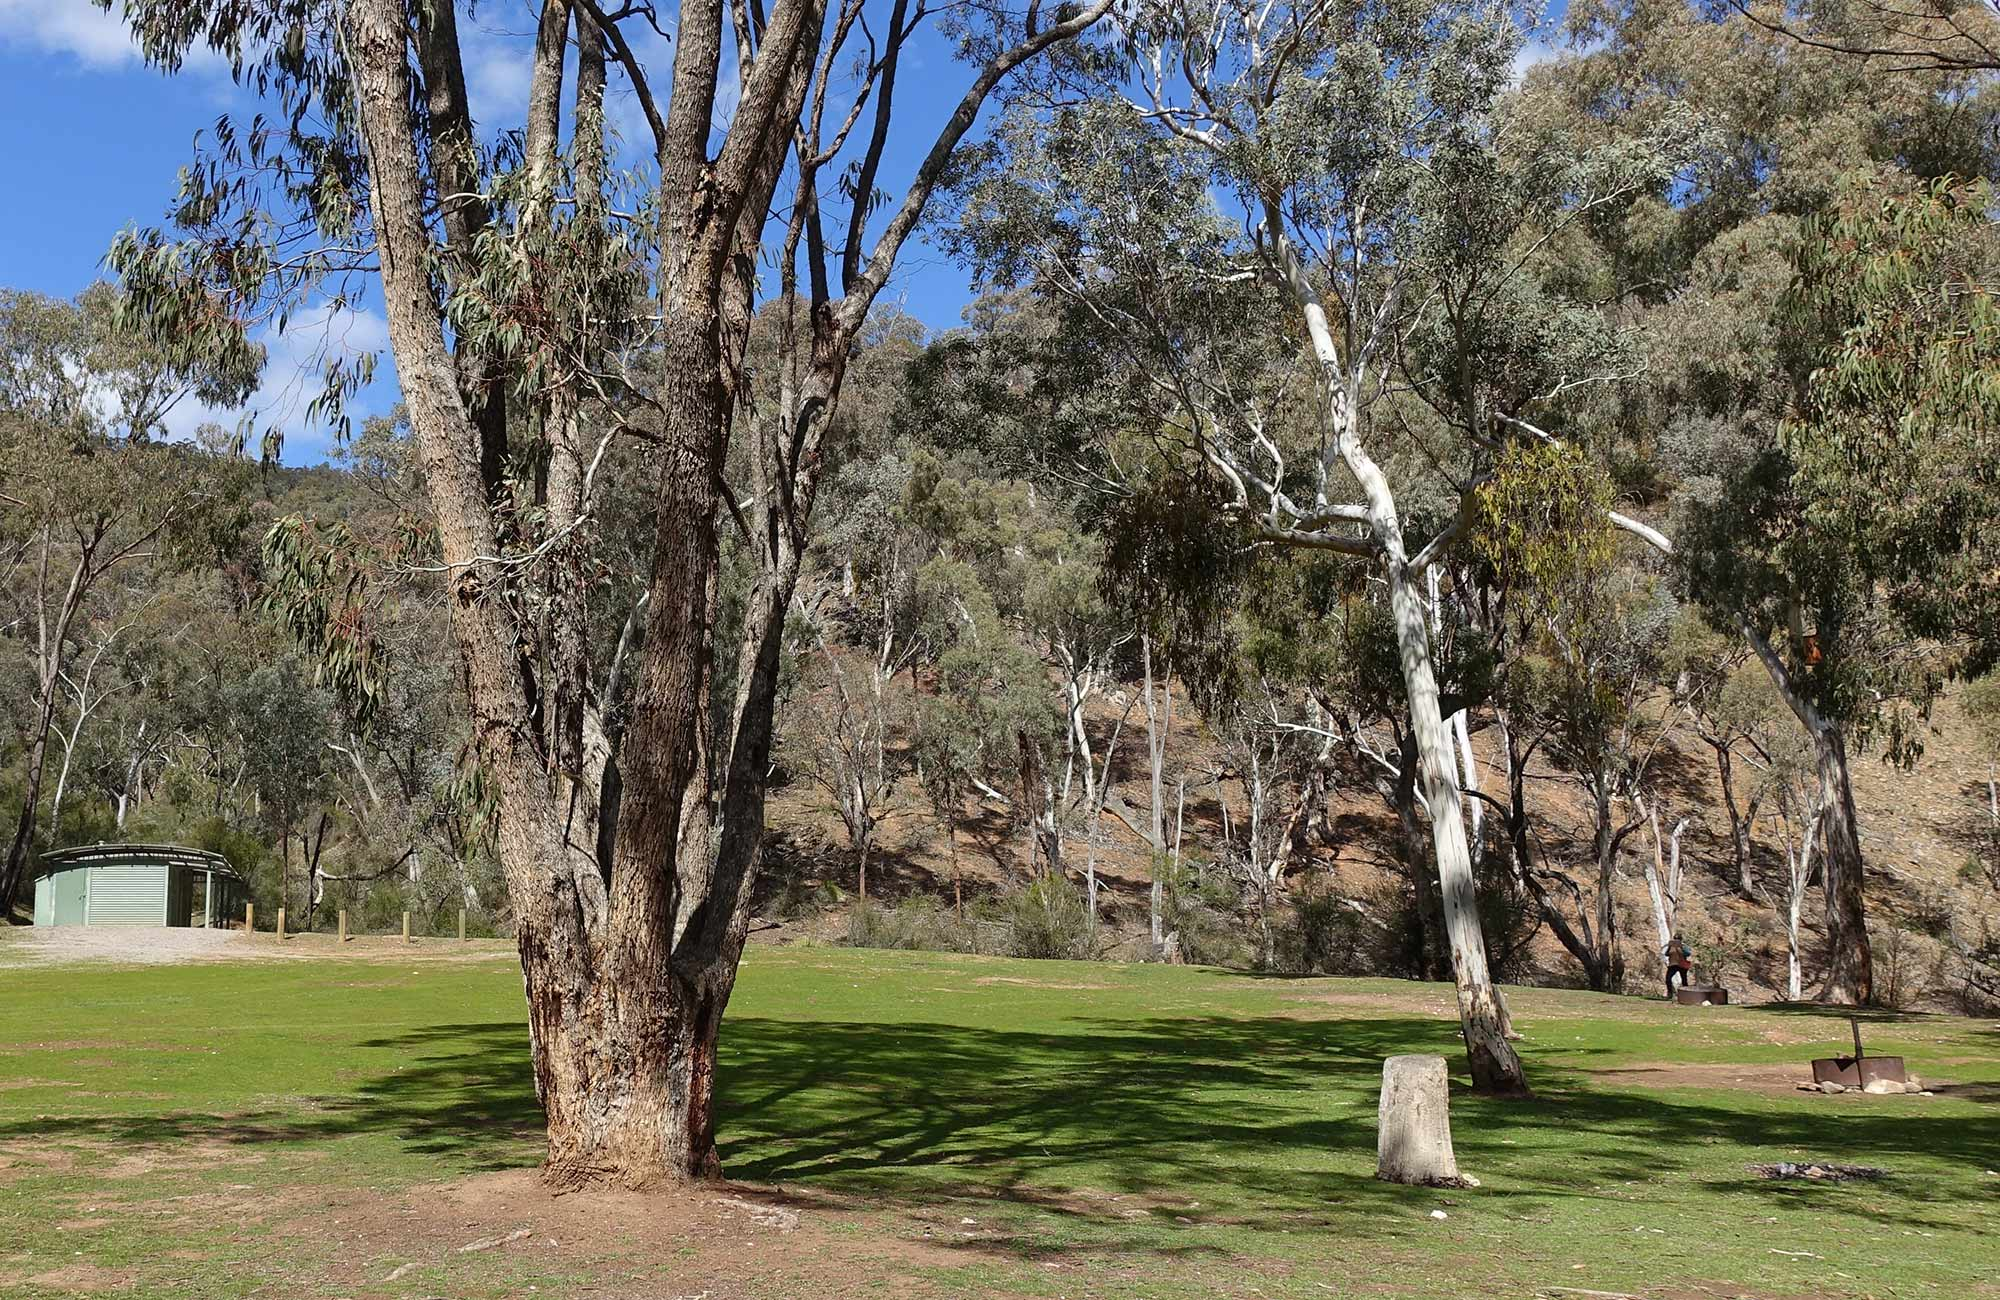 Amenities block and grassy campsites at Abercrombie Caves campground. Photo: Stephen Babka/DPIE